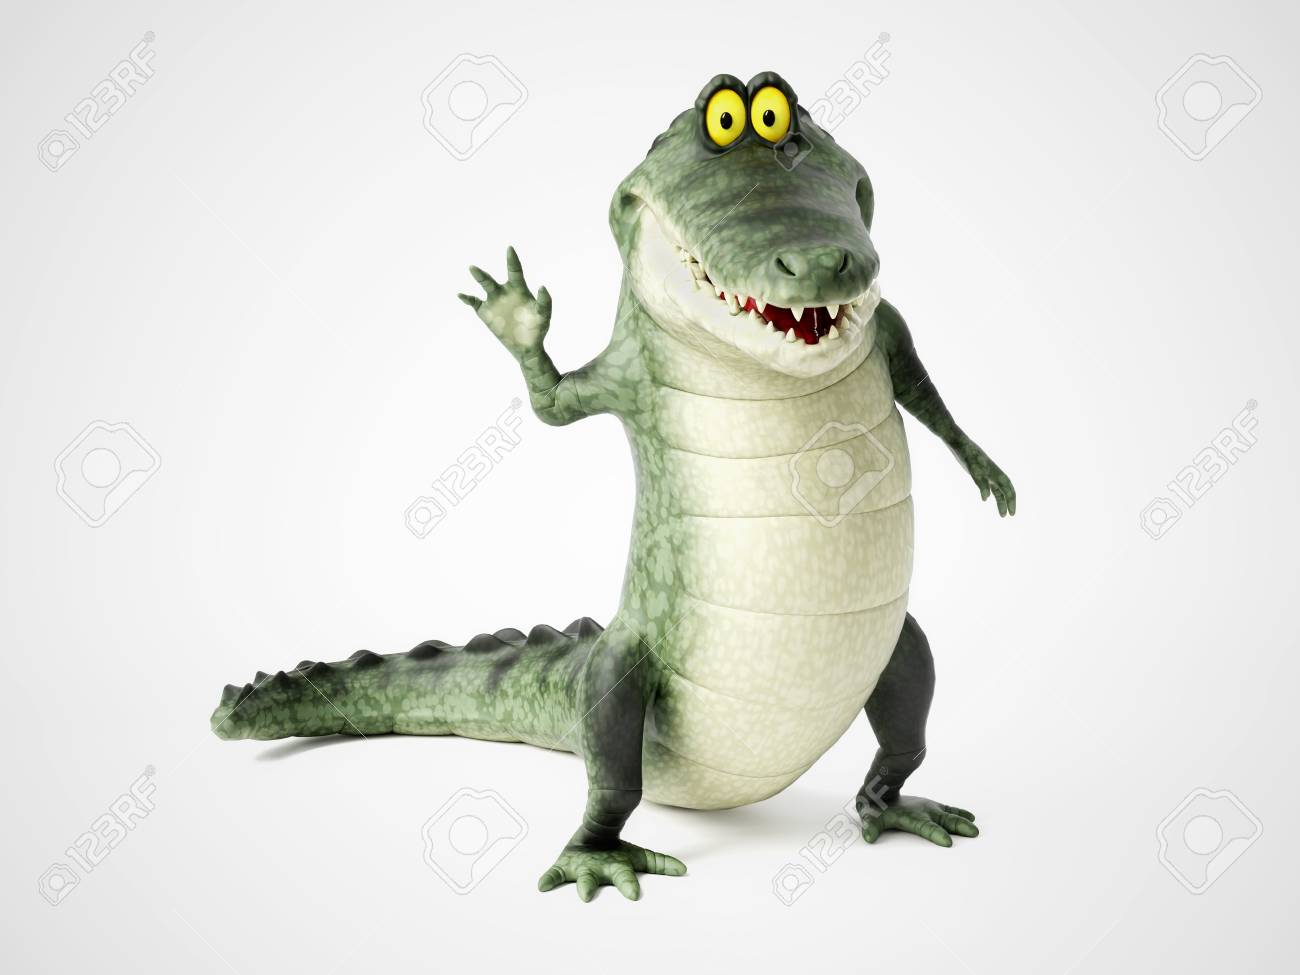 3d Rendering Of A Cute Friendly Cartoon Crocodile Standing Up